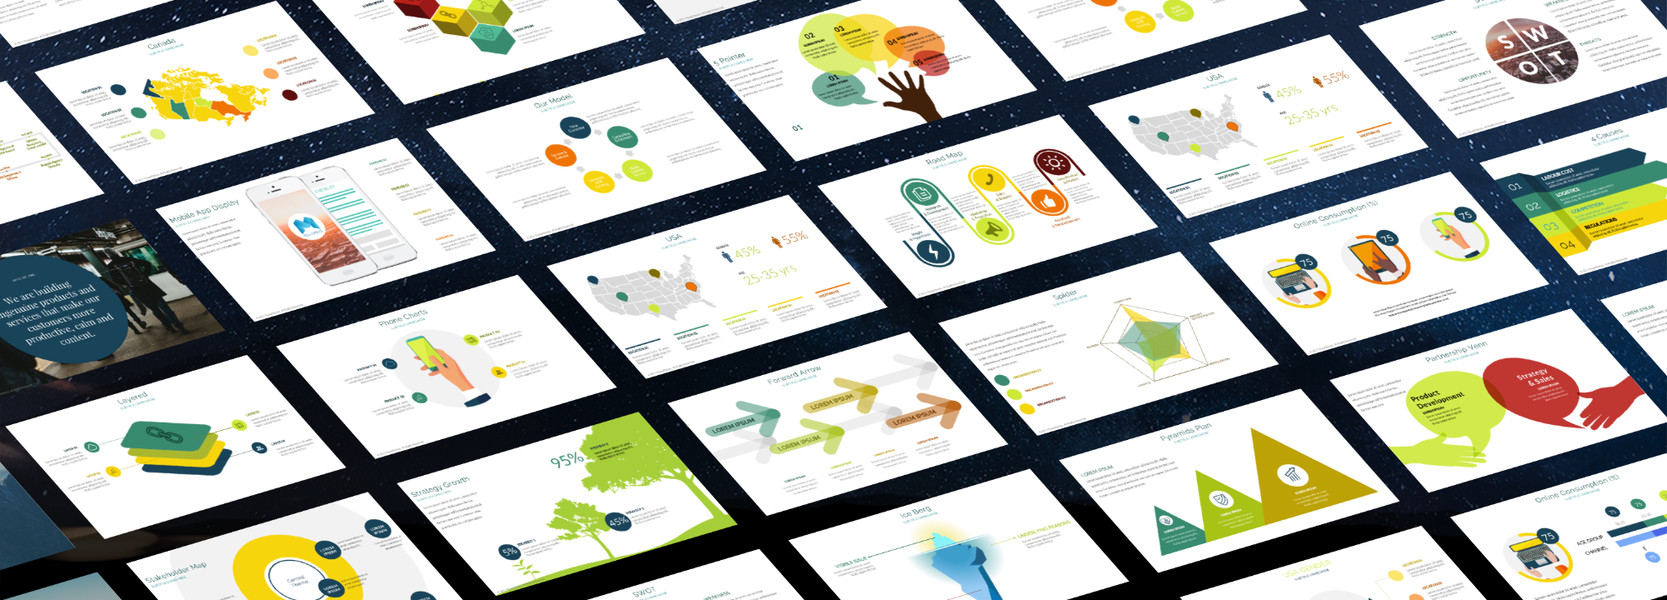 Nail your next pitch with this creative presentation template nail your next pitch with this creative presentation template francis xavier pulse linkedin toneelgroepblik Image collections